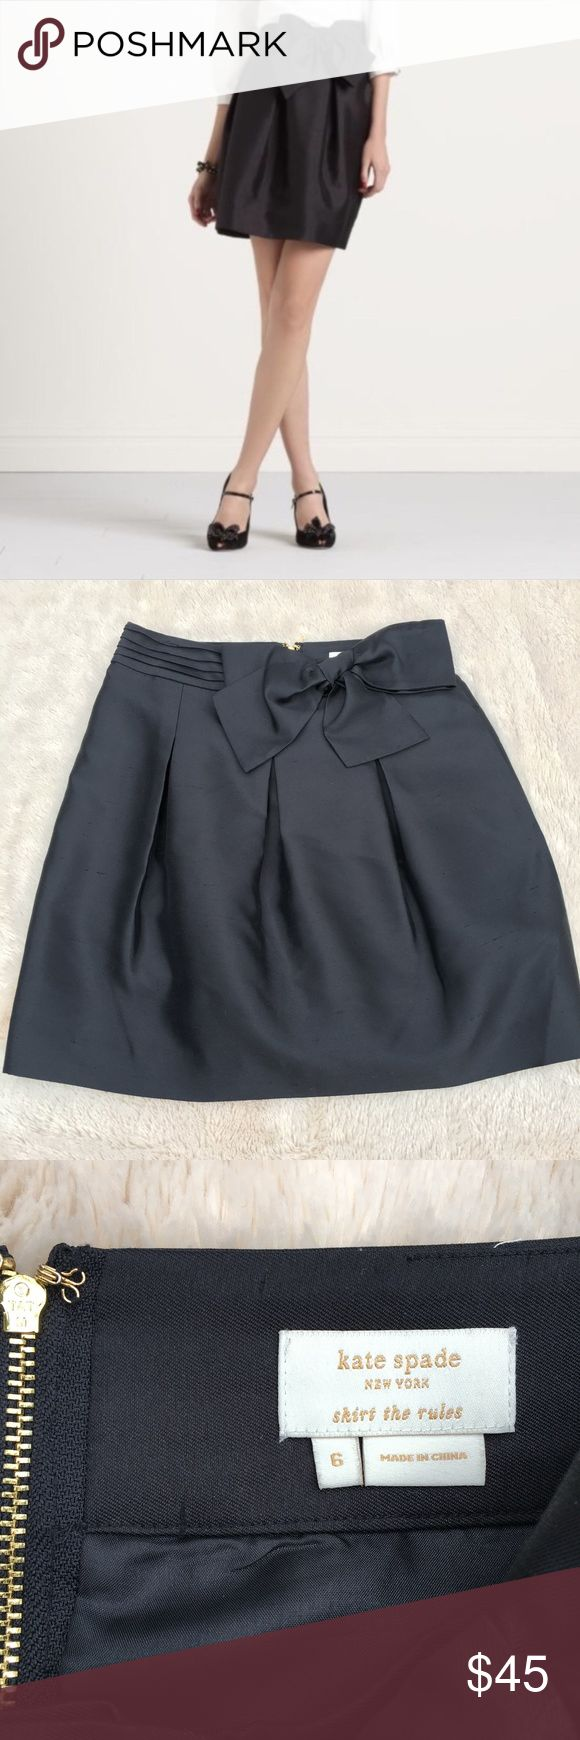 "kate spade NY ""skirt the rules"" silk skirt w/bow kate spade ""skirt the rules"" black silk skirt with pleated detail in front and bow. Has pockets and a gold metal zipper in back! Perfect for the holidays.  The silk has a few snags, looks to me like raw silk, as shown in the closer up photo of the back of the skirt.  The silk has a nice shimmer.  Approx 14.75"" flat waist, 20"" length.  Shell is 100% silk, fully lined, lining is 100% polyester. kate spade Skirts Mini"